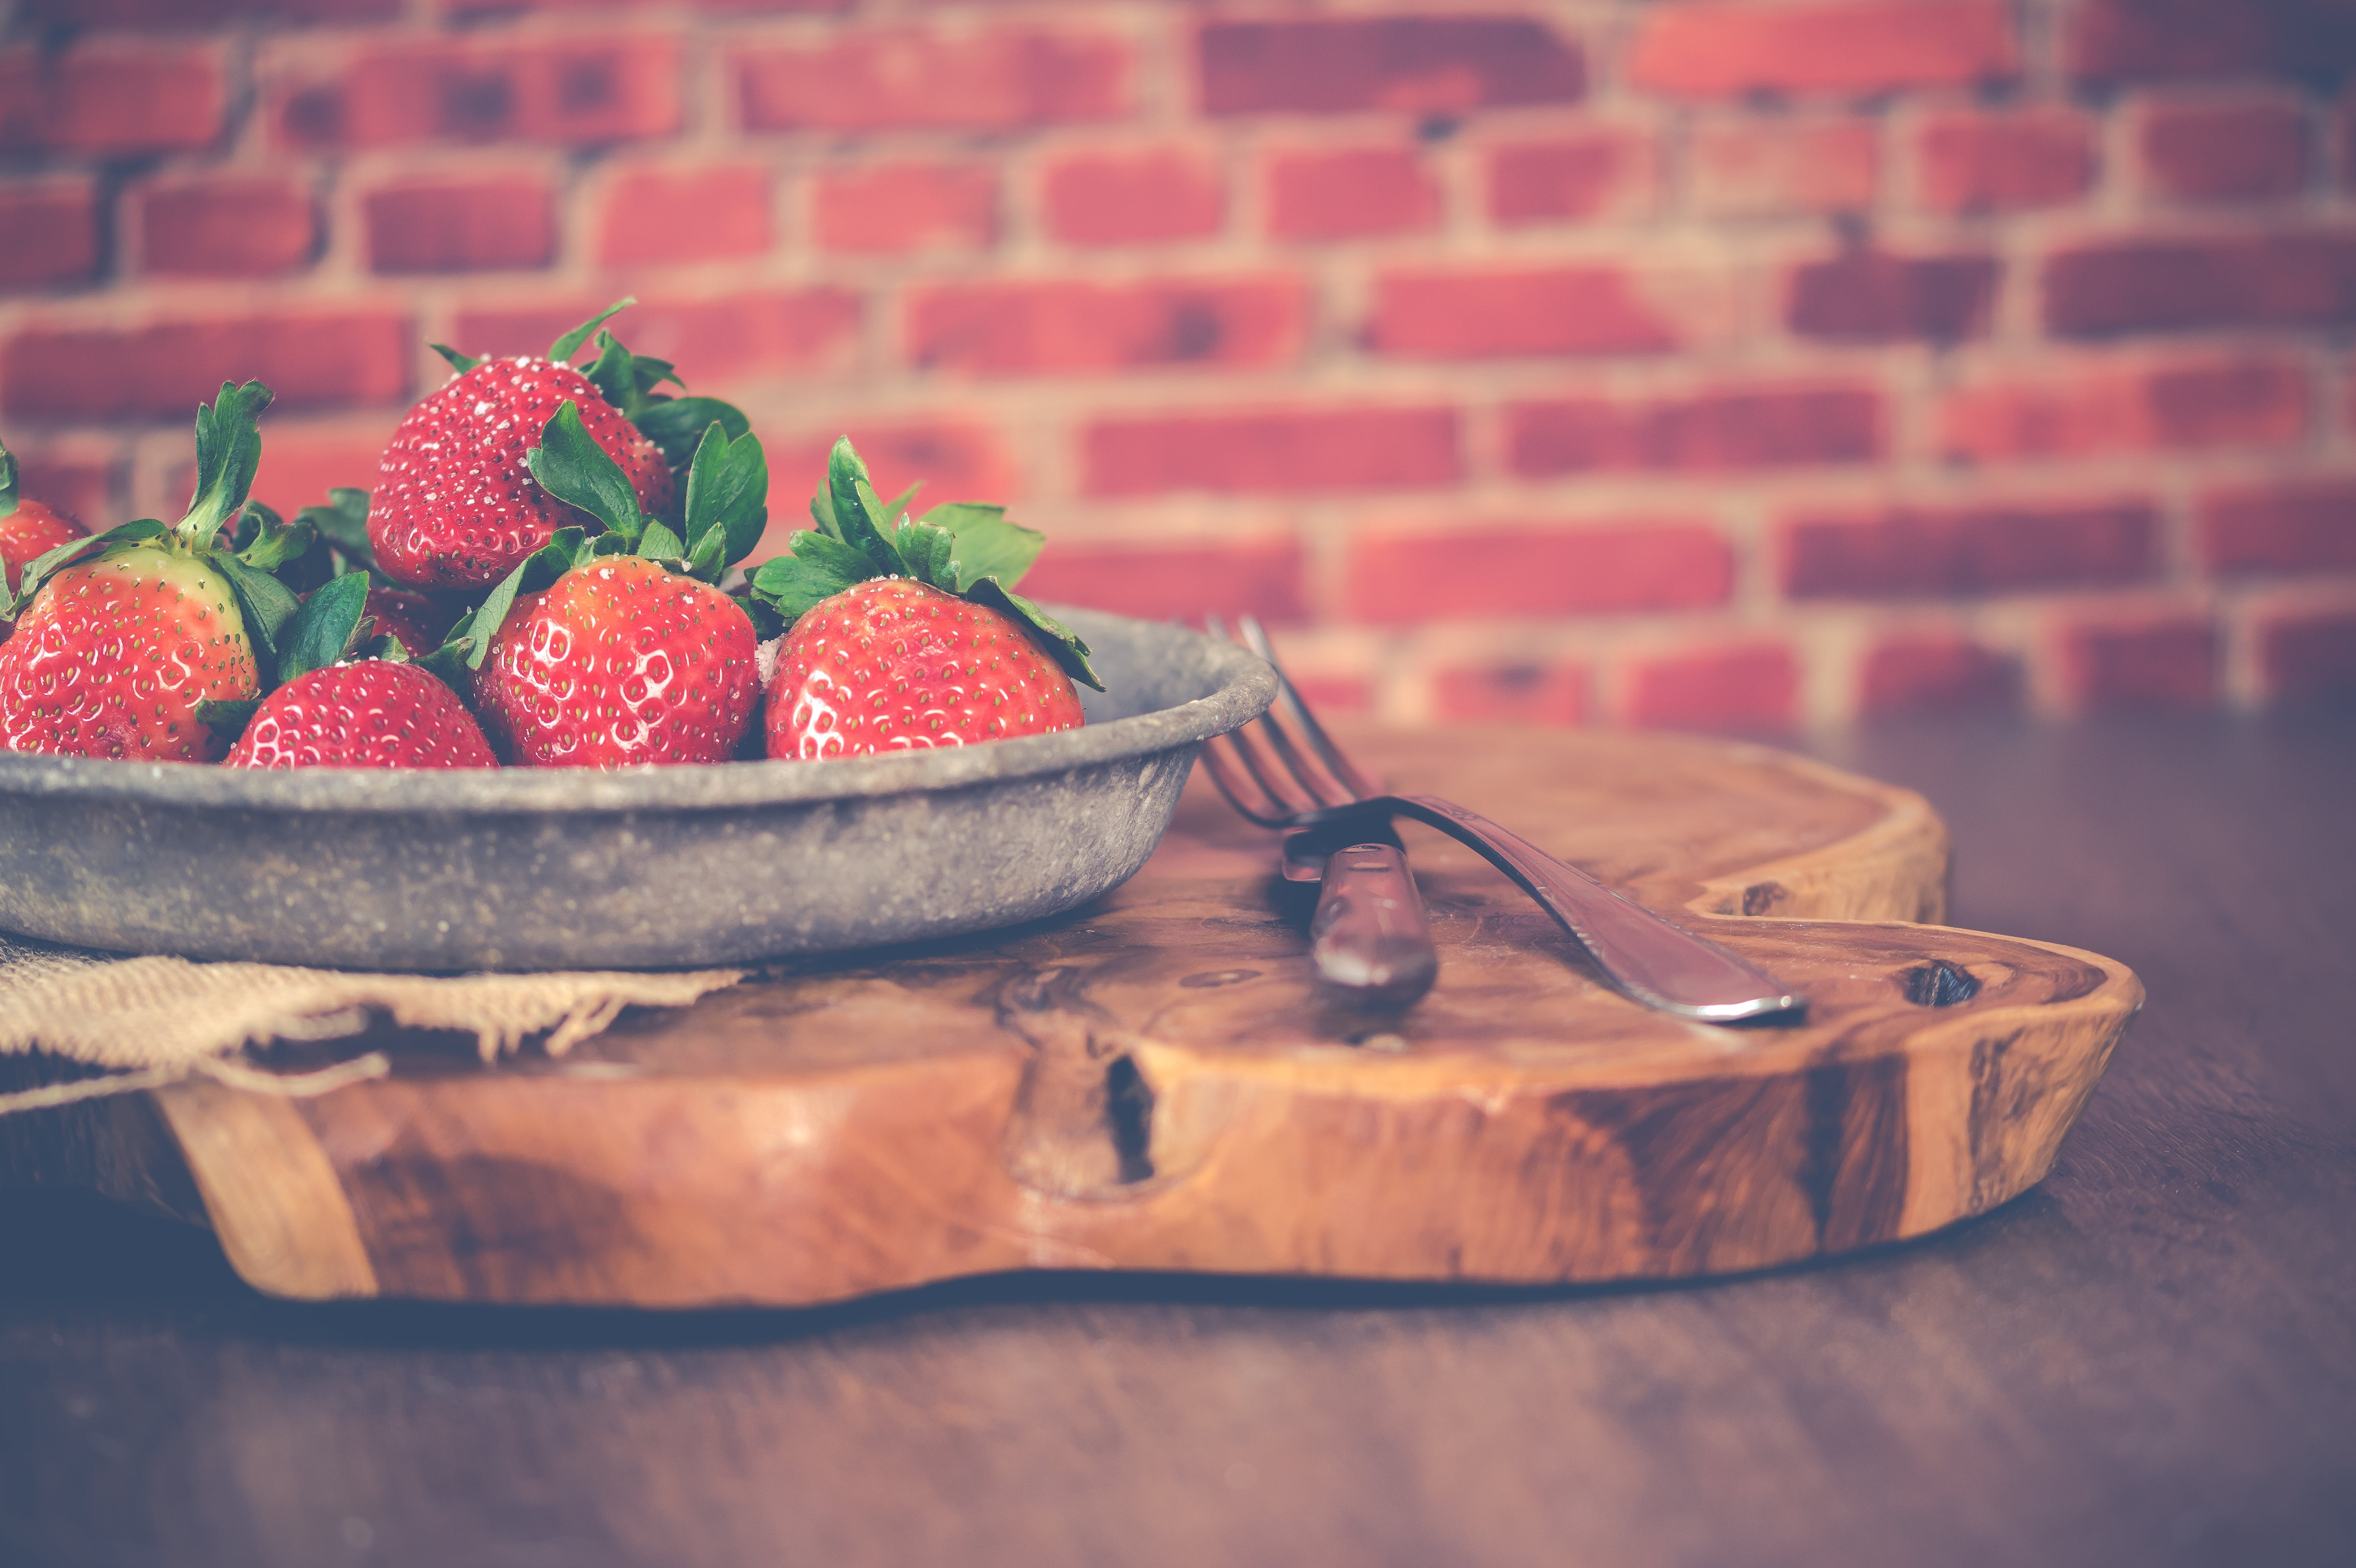 Strawberries on Gray Steel Bowl